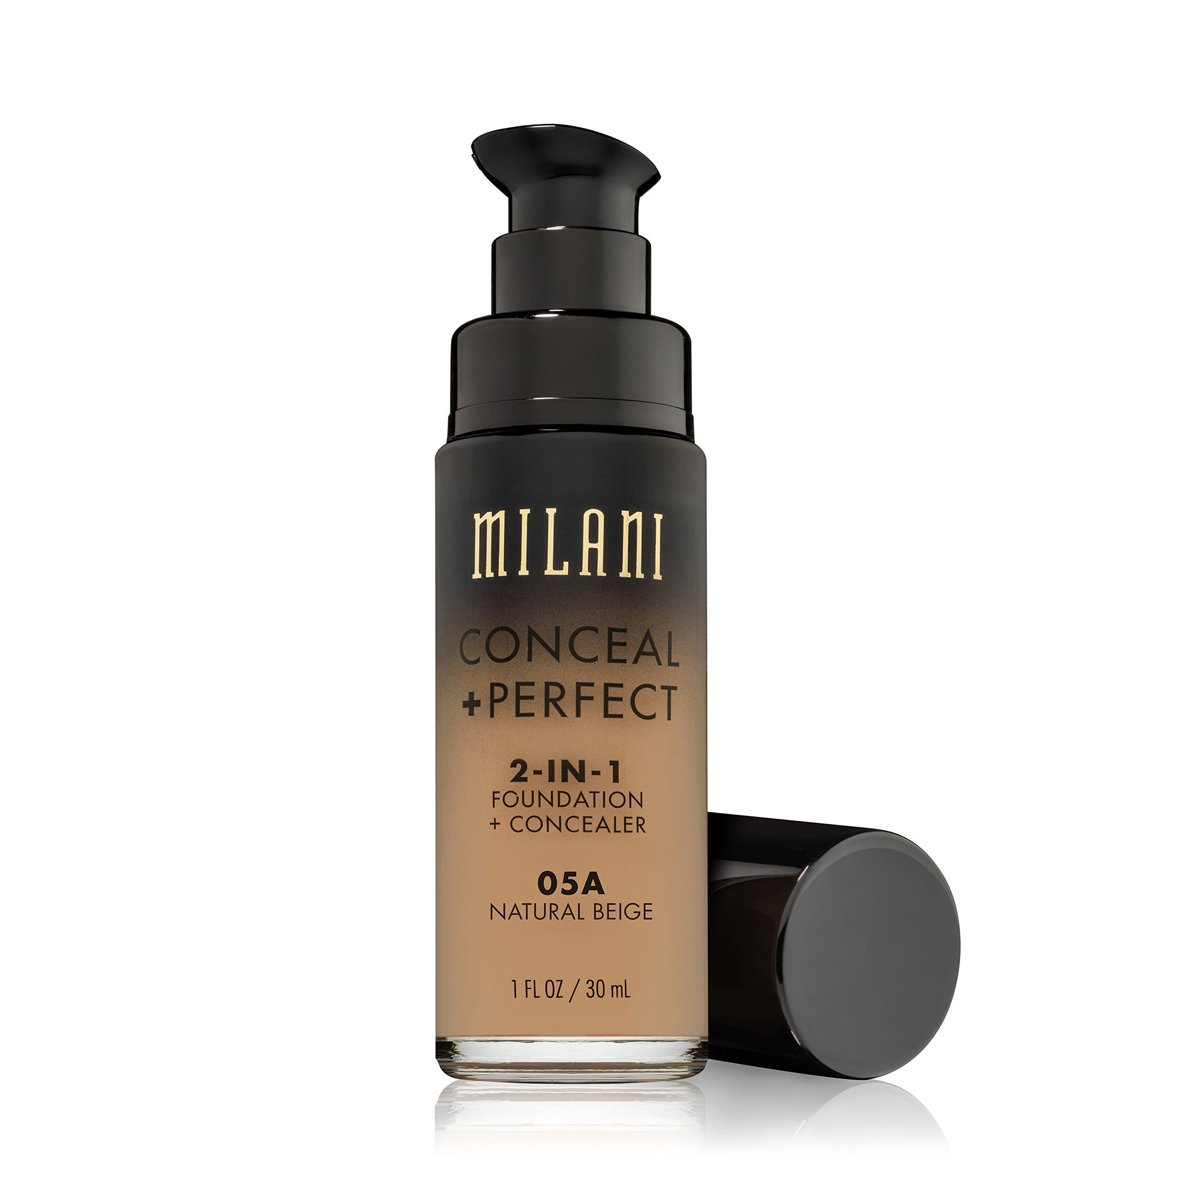 MILANI Conceal + Perfect 2-In-1 Foundation + Concealer - Natural Beige Milani Cosmetics